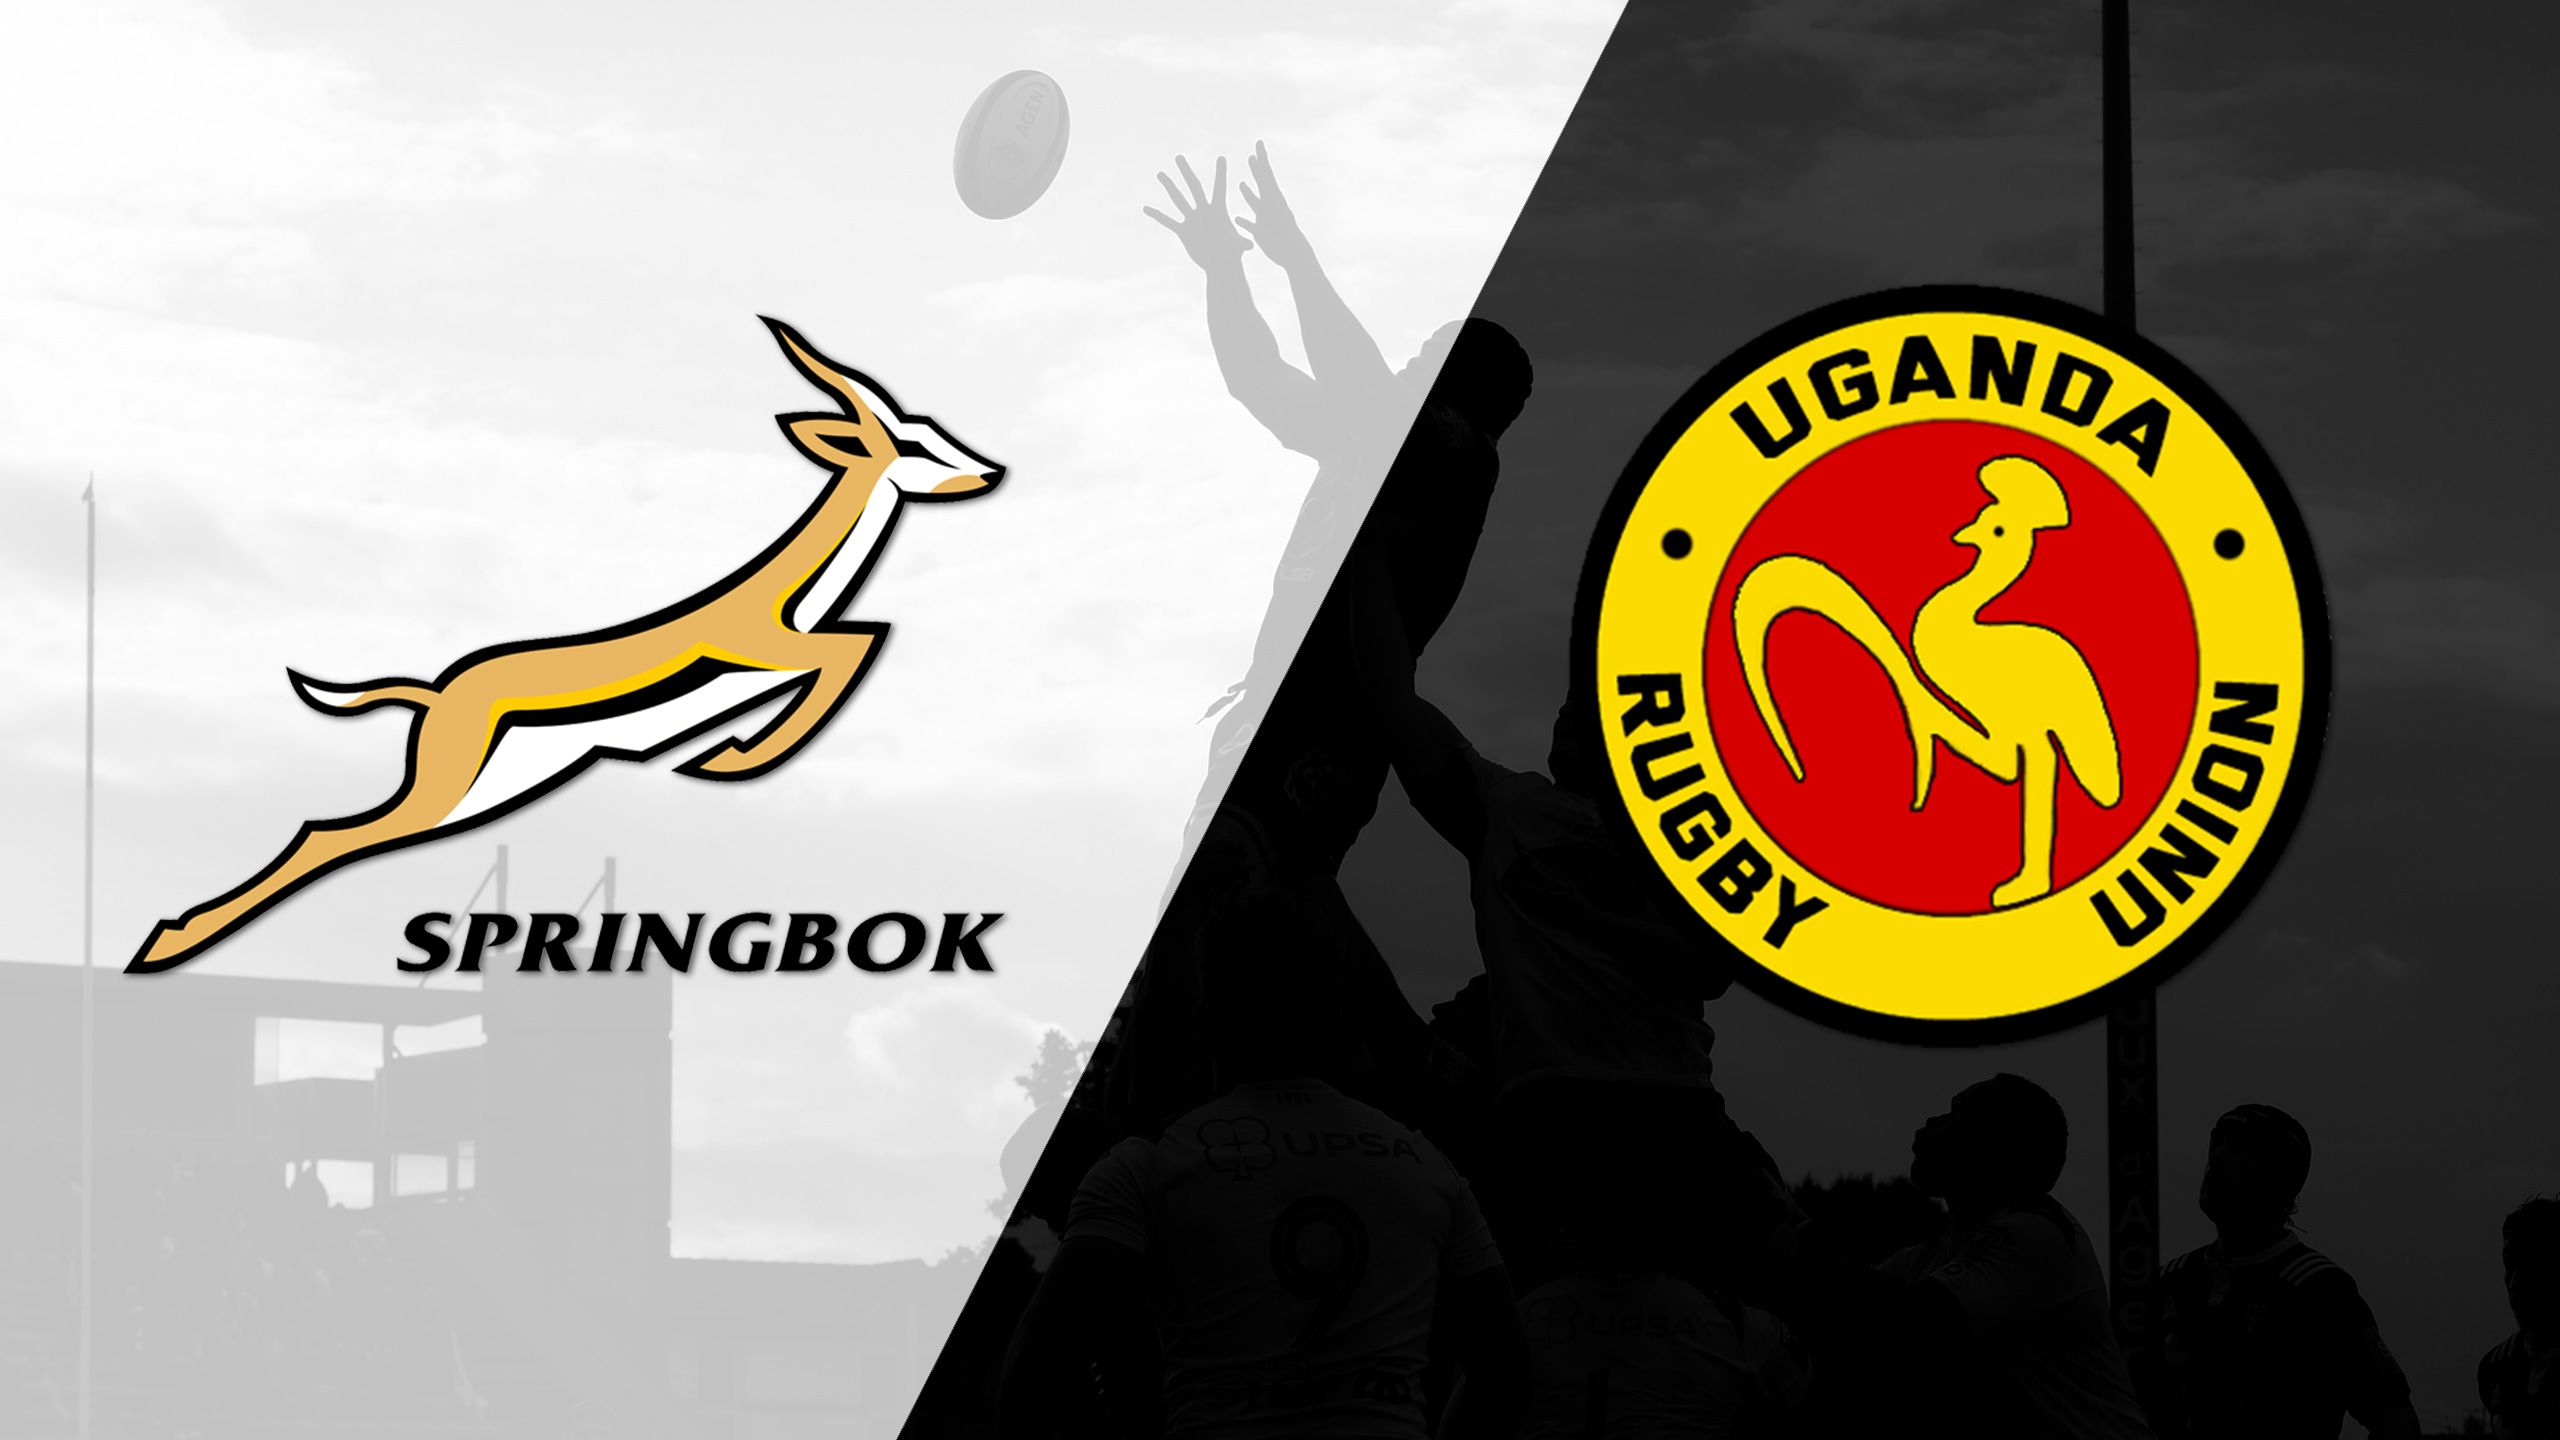 South Africa vs. Uganda (World Rugby Sevens Series)